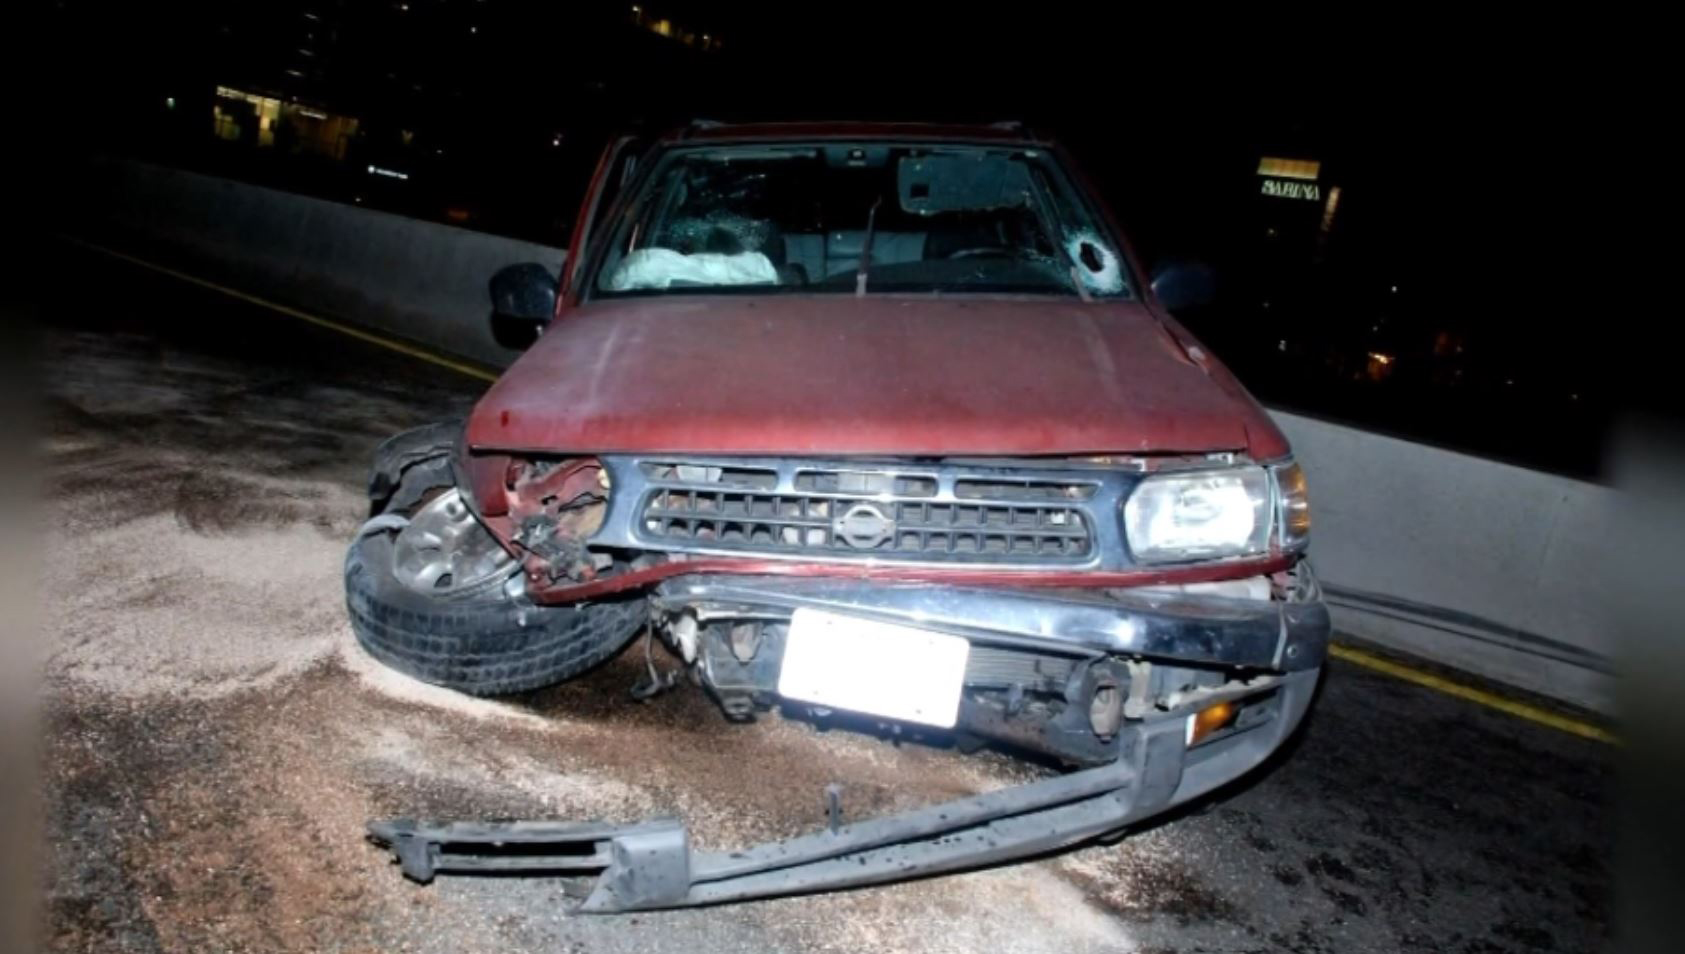 Damage done to Kenneth Johnson's SUV the night of the rock attack on June 14, 2014. (APD)